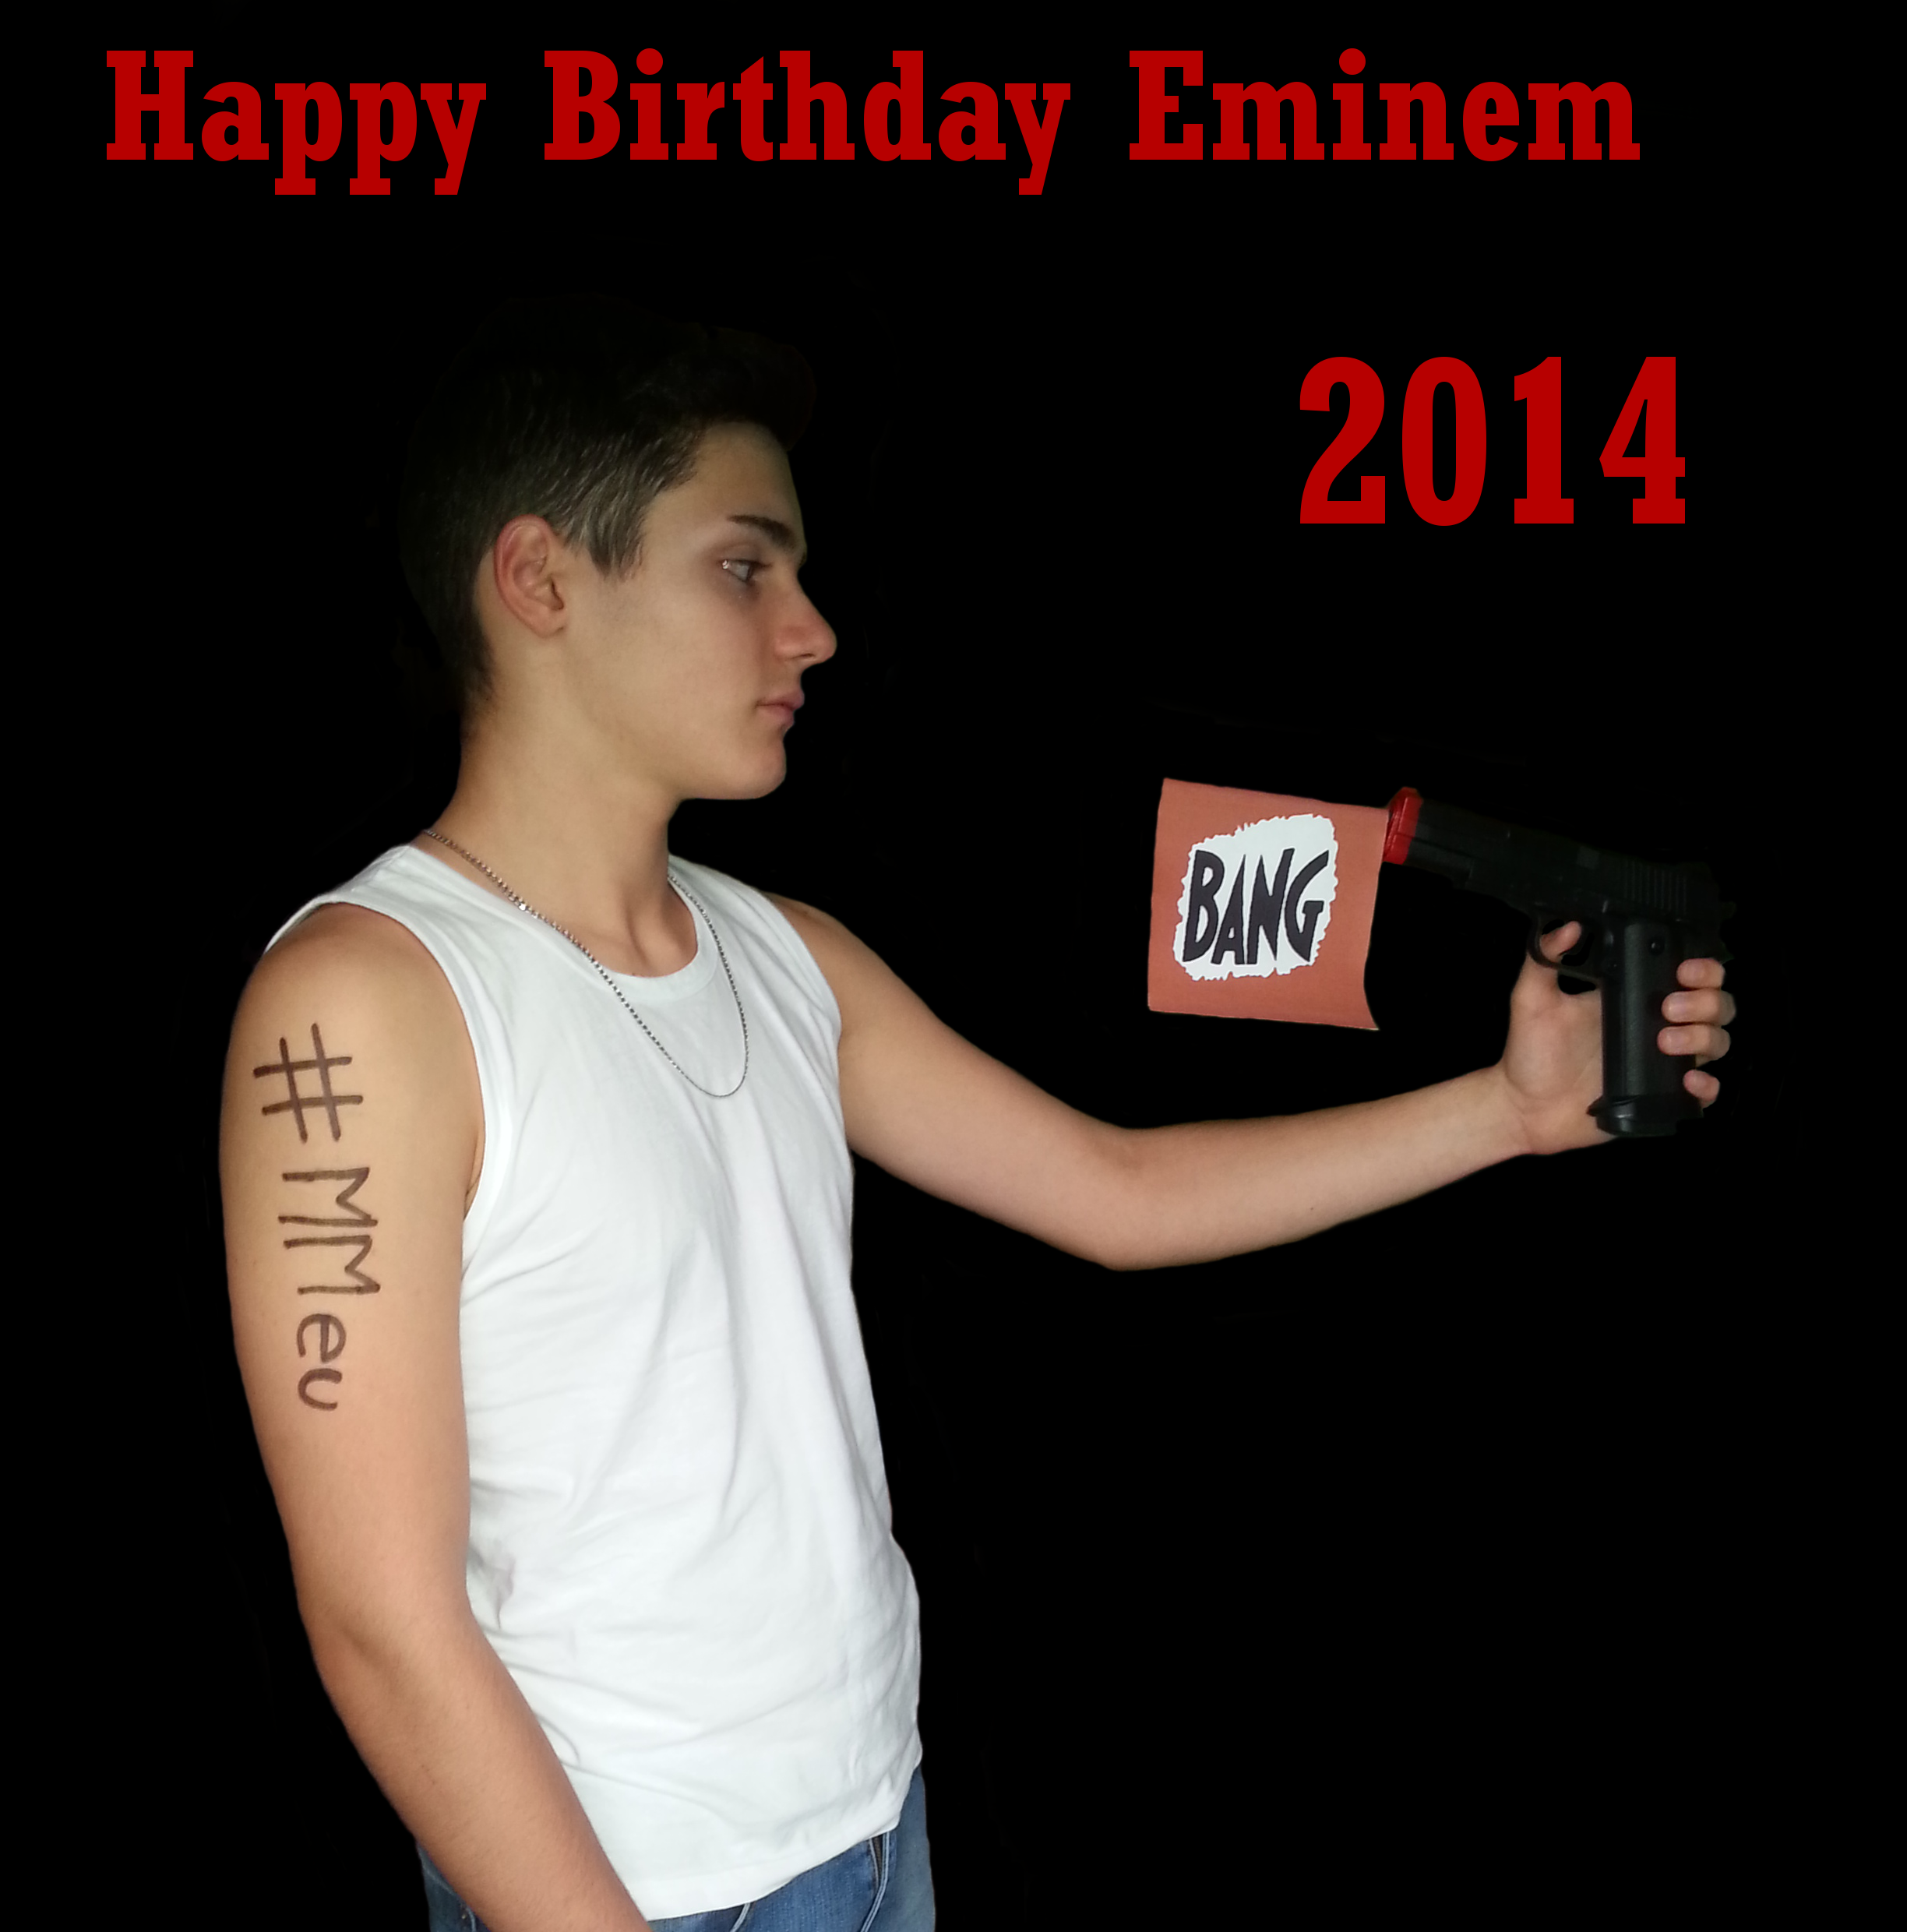 Happy Birthday Eminem 2014